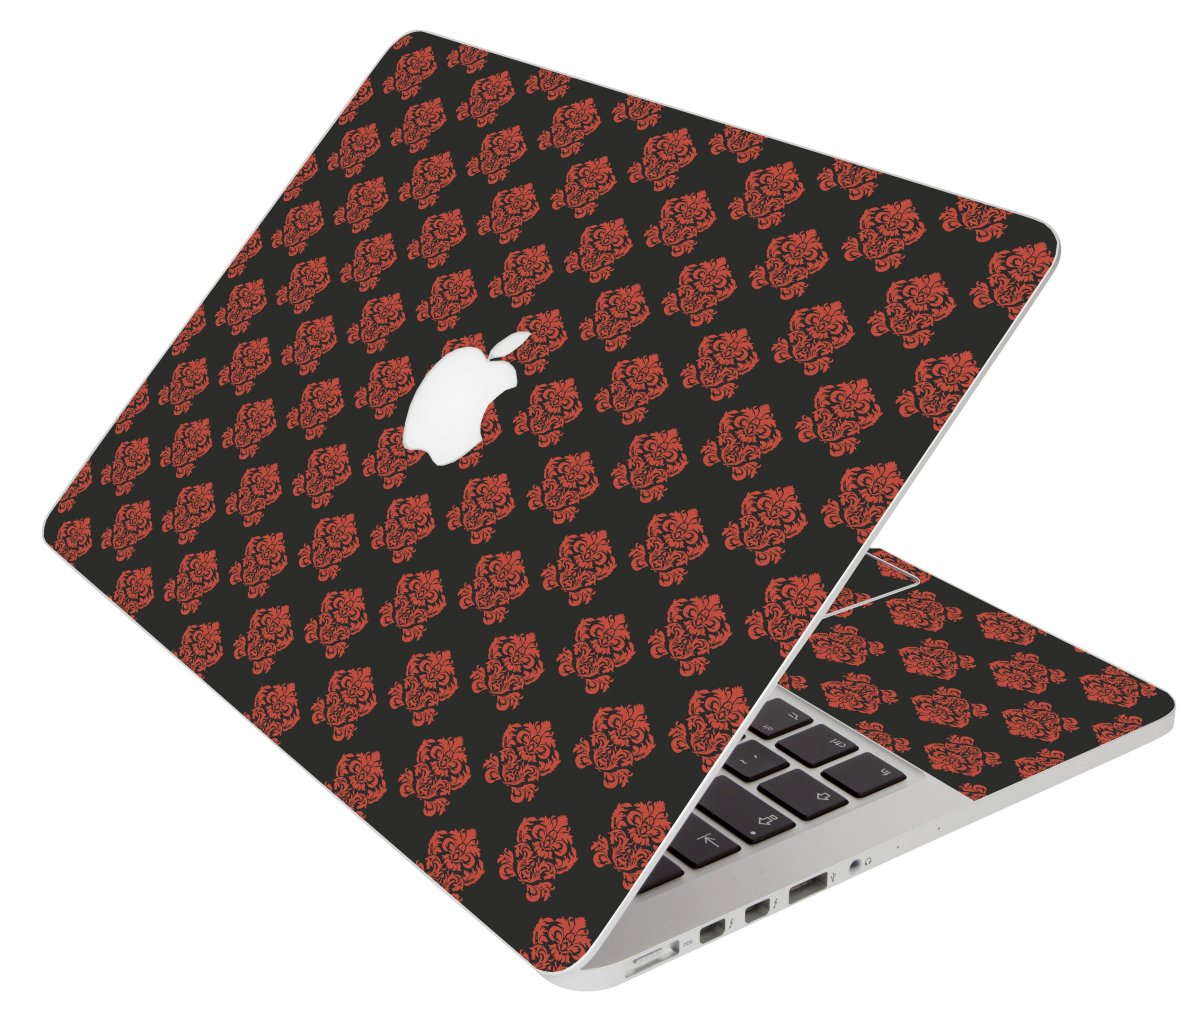 Black Flower Burst Apple Macbook Air 11 A1370 Laptop Skin